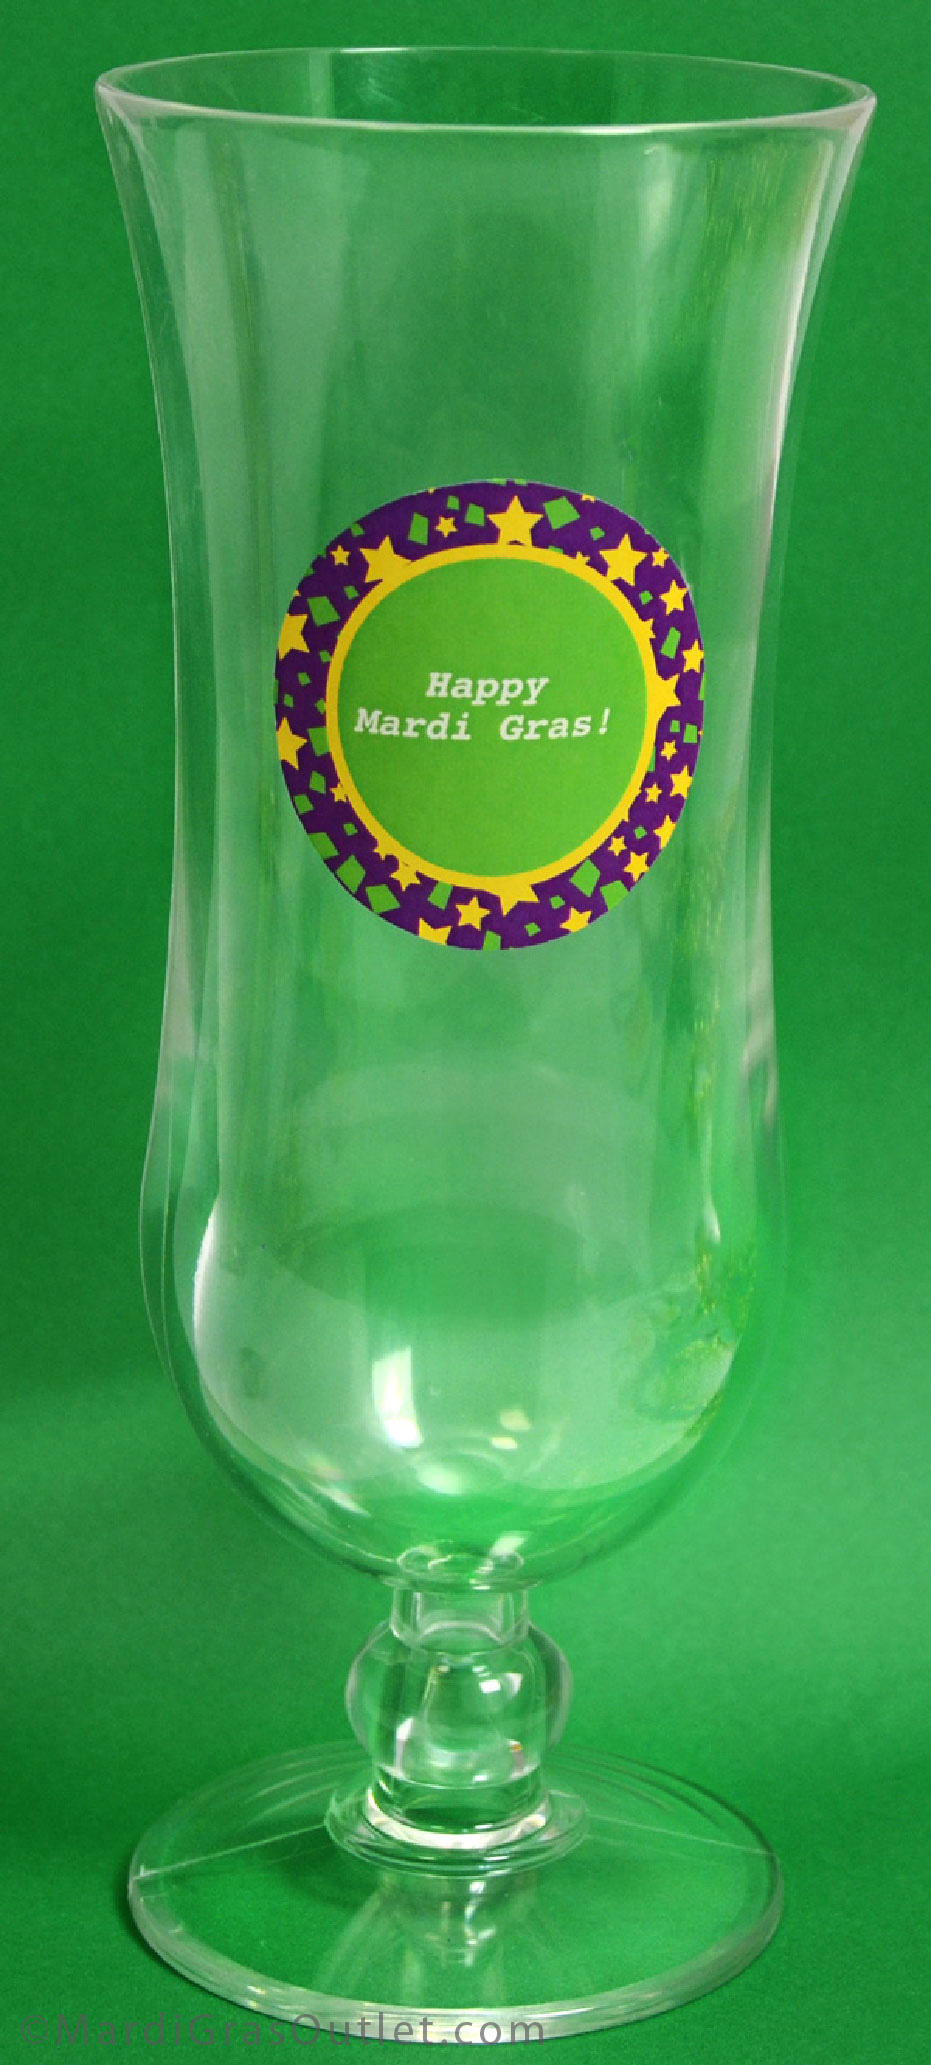 party ideas by mardi gras outlet free mardi gras printable stickers